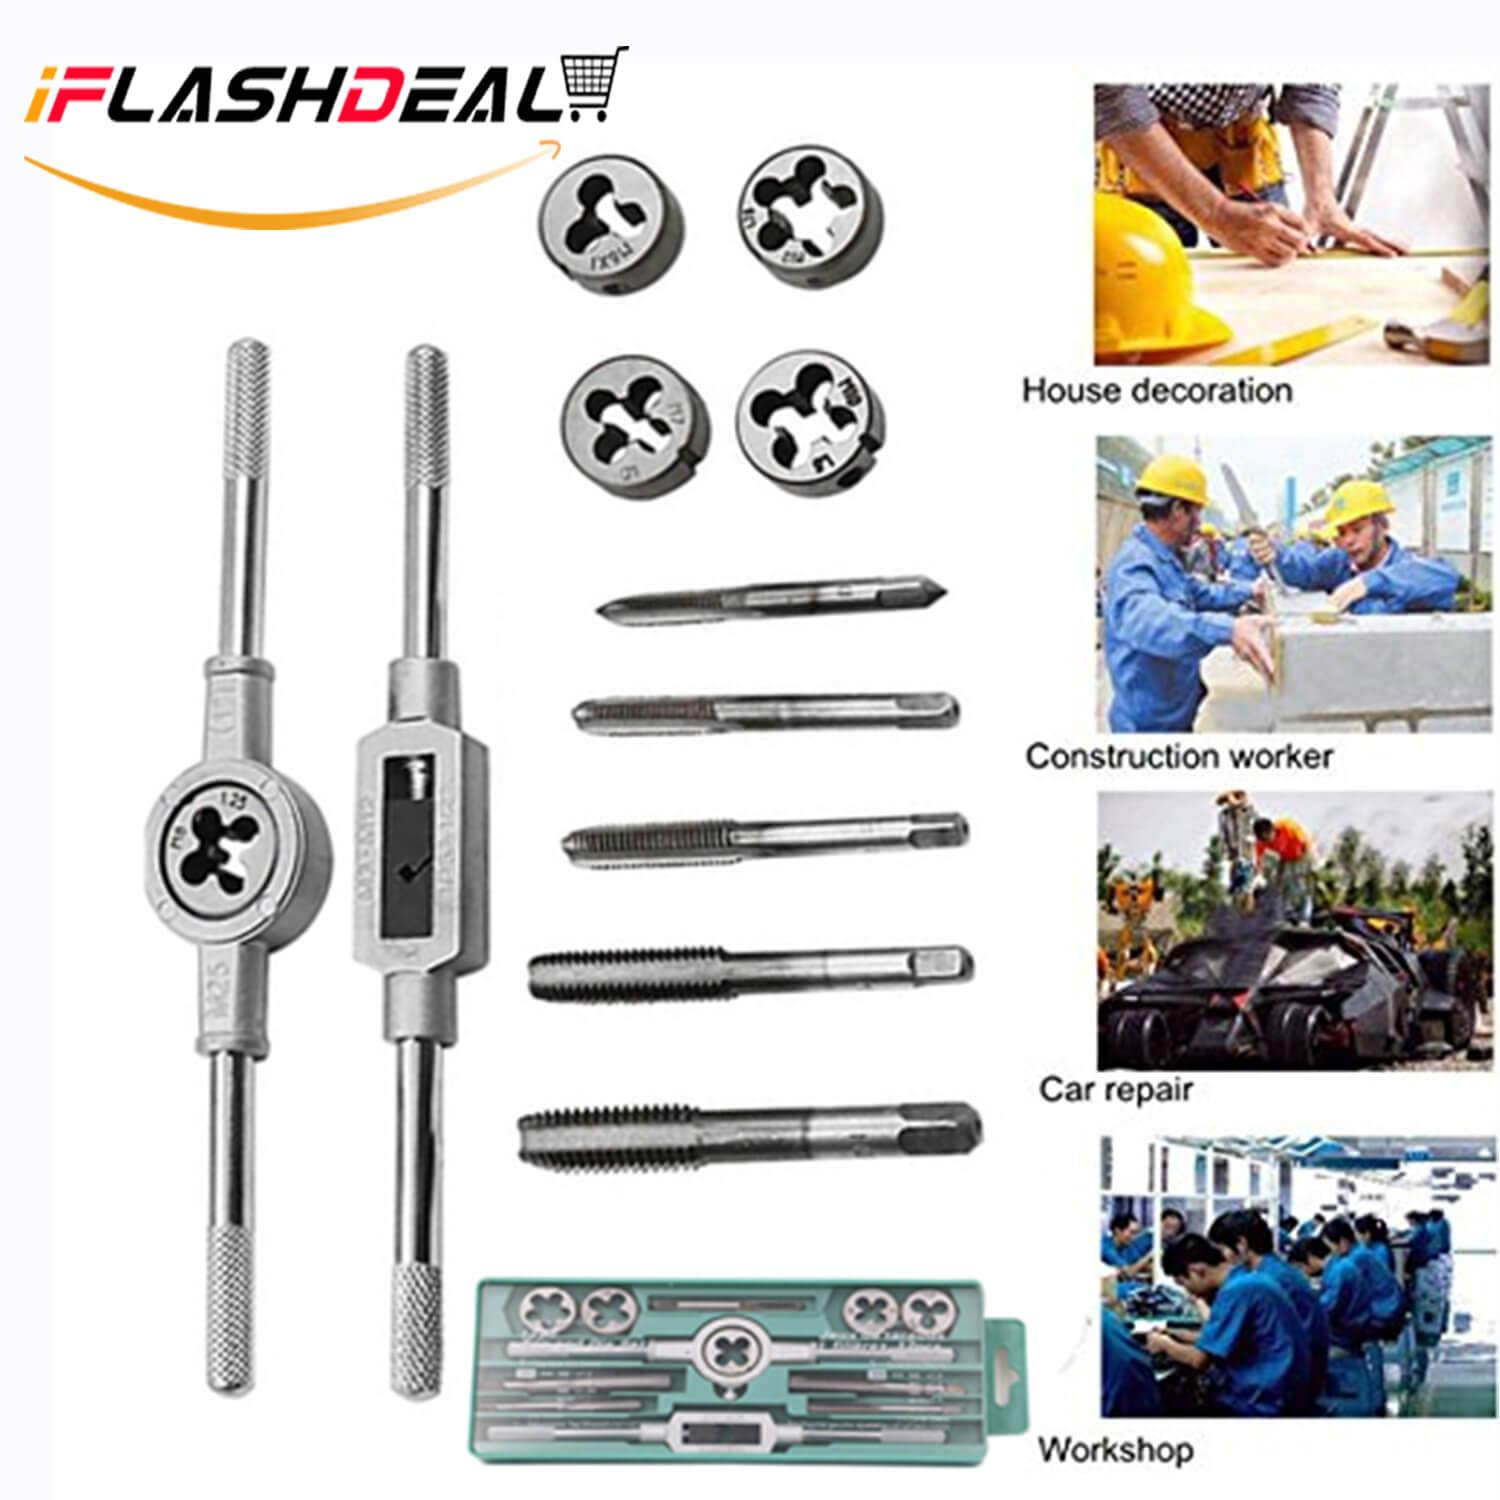 iFlashDeal 12PCS Tap and Die Set Metric Tap Wrench Combination Alloy Steel Hand Tools Metric Size for Wood Plastic Soft Metal Steel Philippines